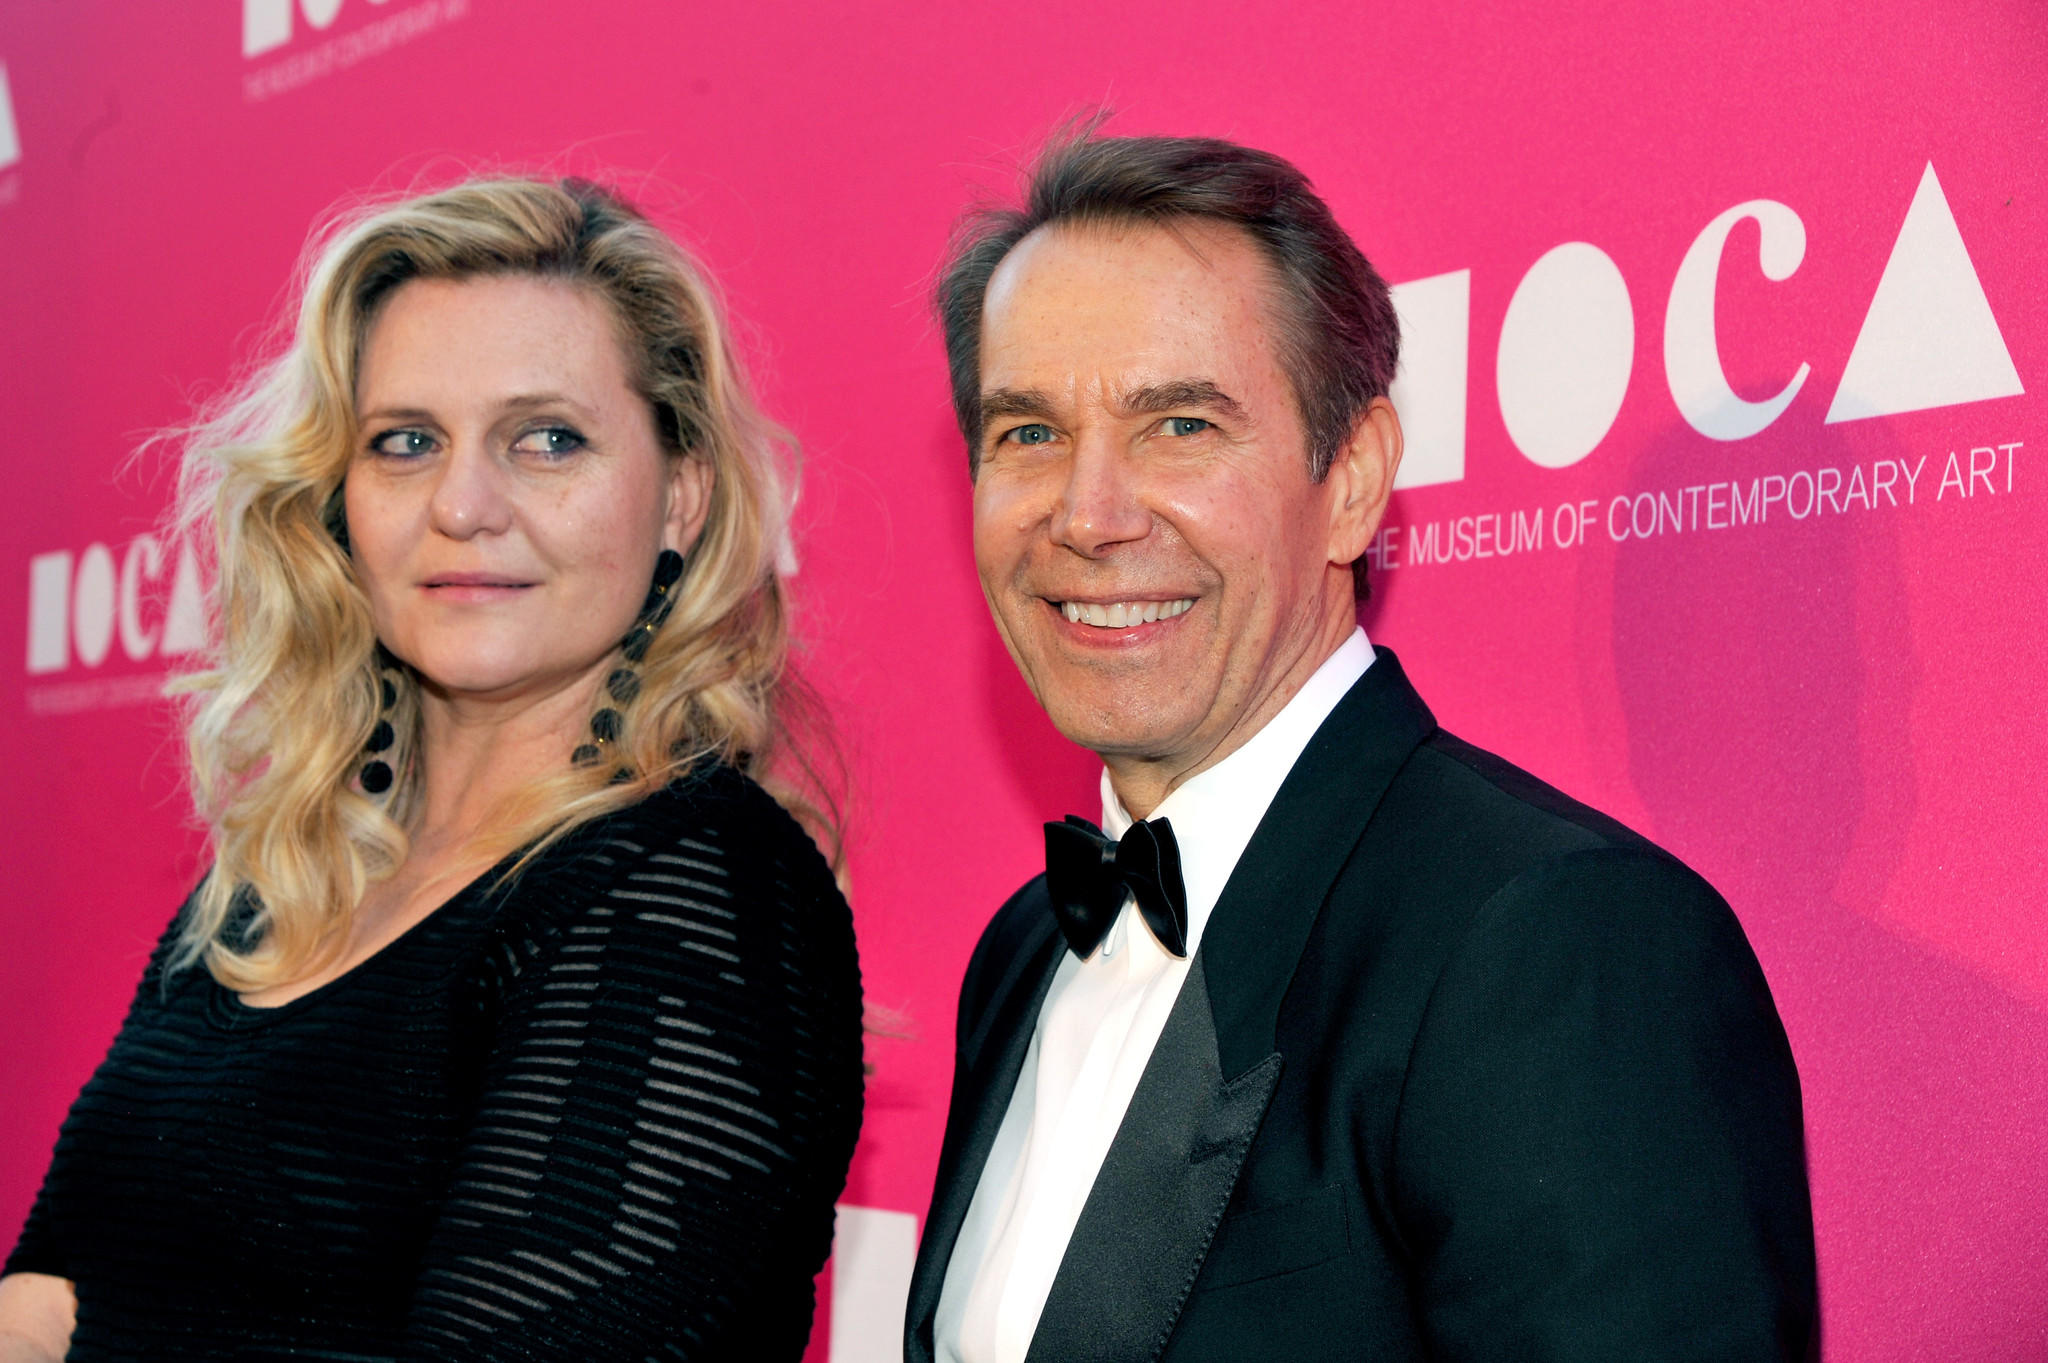 Artist Justine Wheeler Koons and honoree Jeff Koons (John Sciulli / Getty Images for MOCA)